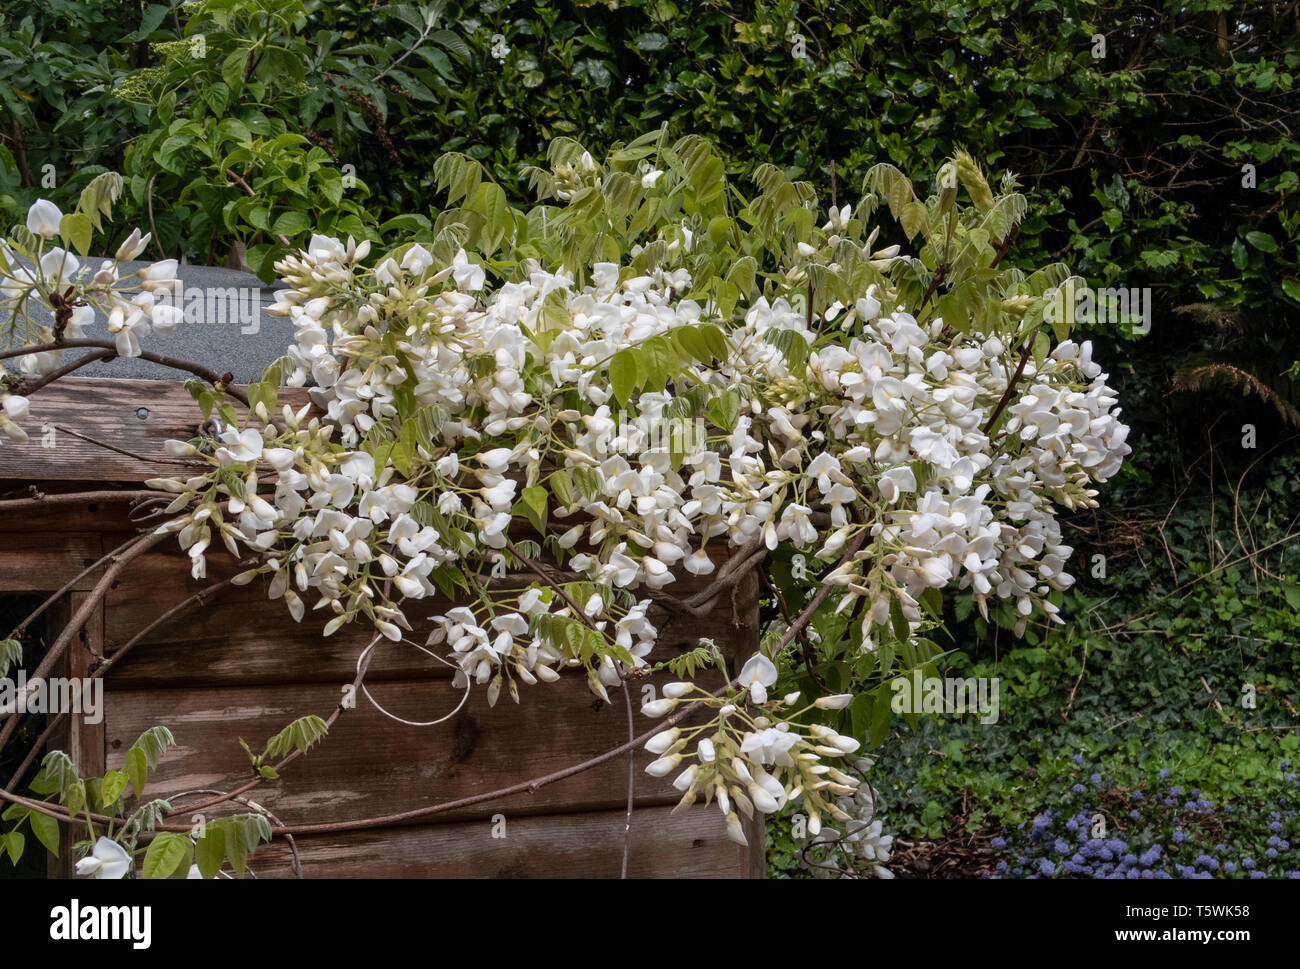 White Wisterria Sinensis Blanca growing up the side of a garden potting shed. Stock Photo